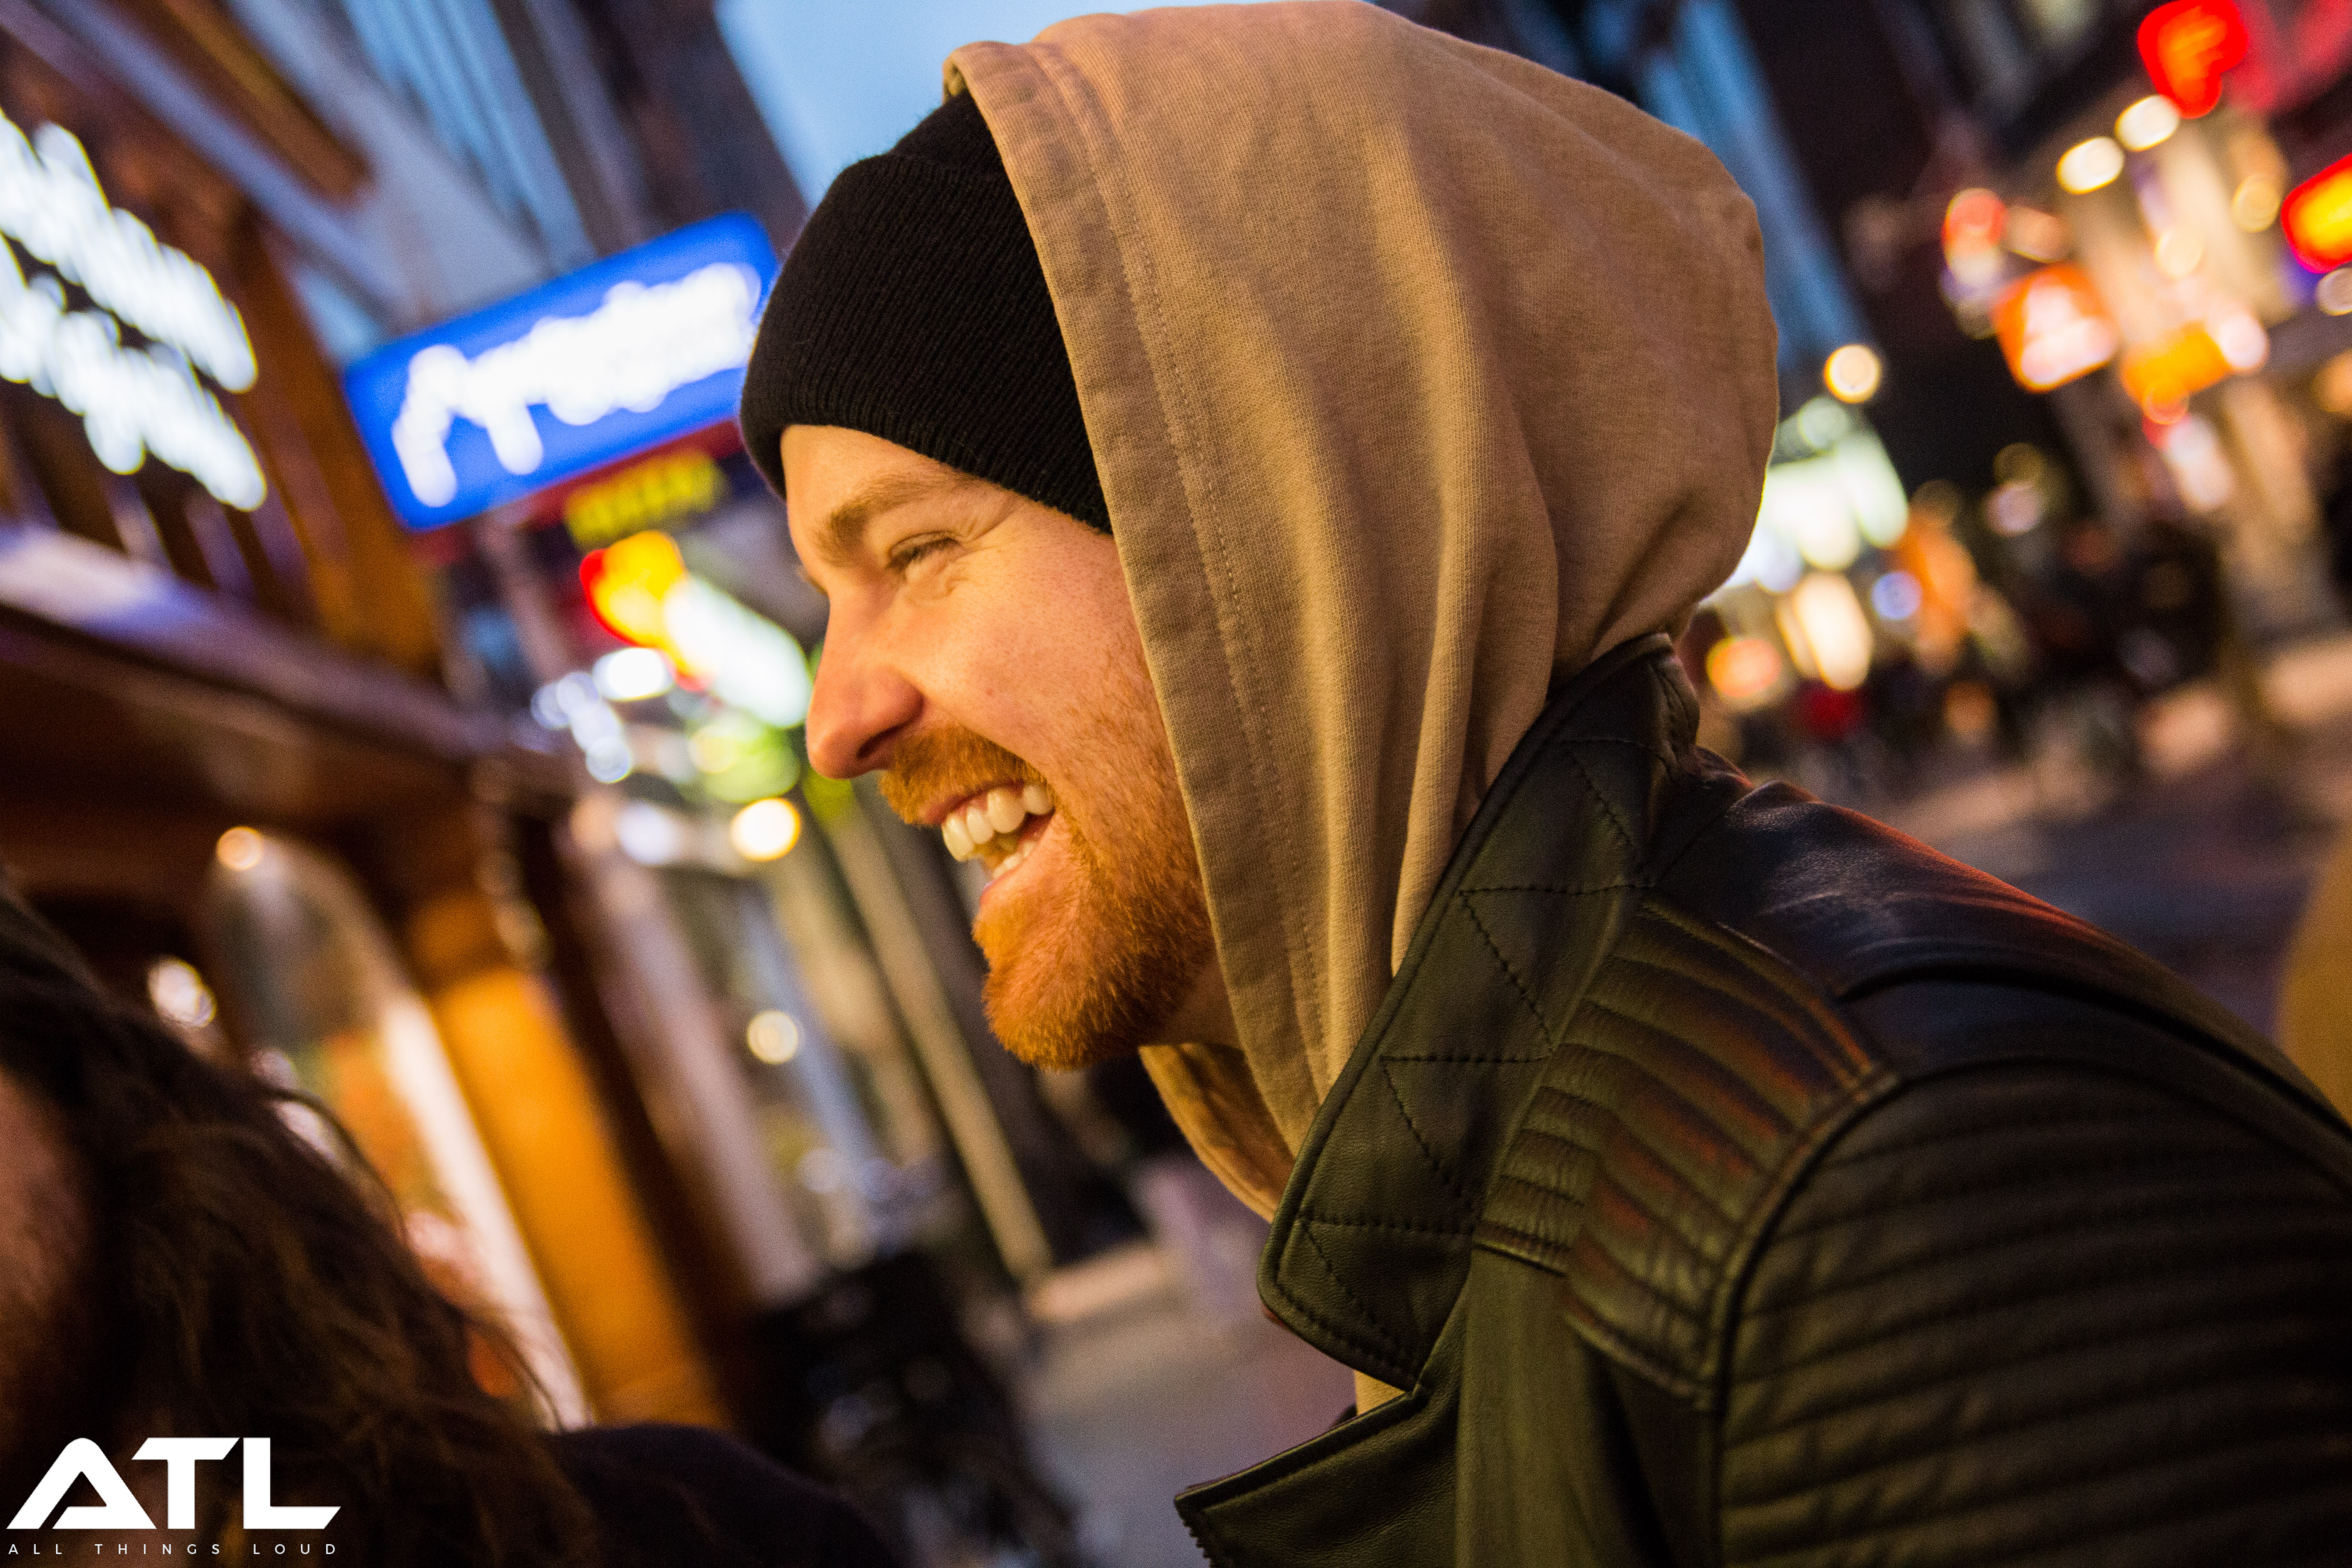 17:04. Memphis May Fire frontman Matty Mullins joins us on a trip to the local Falafel chain